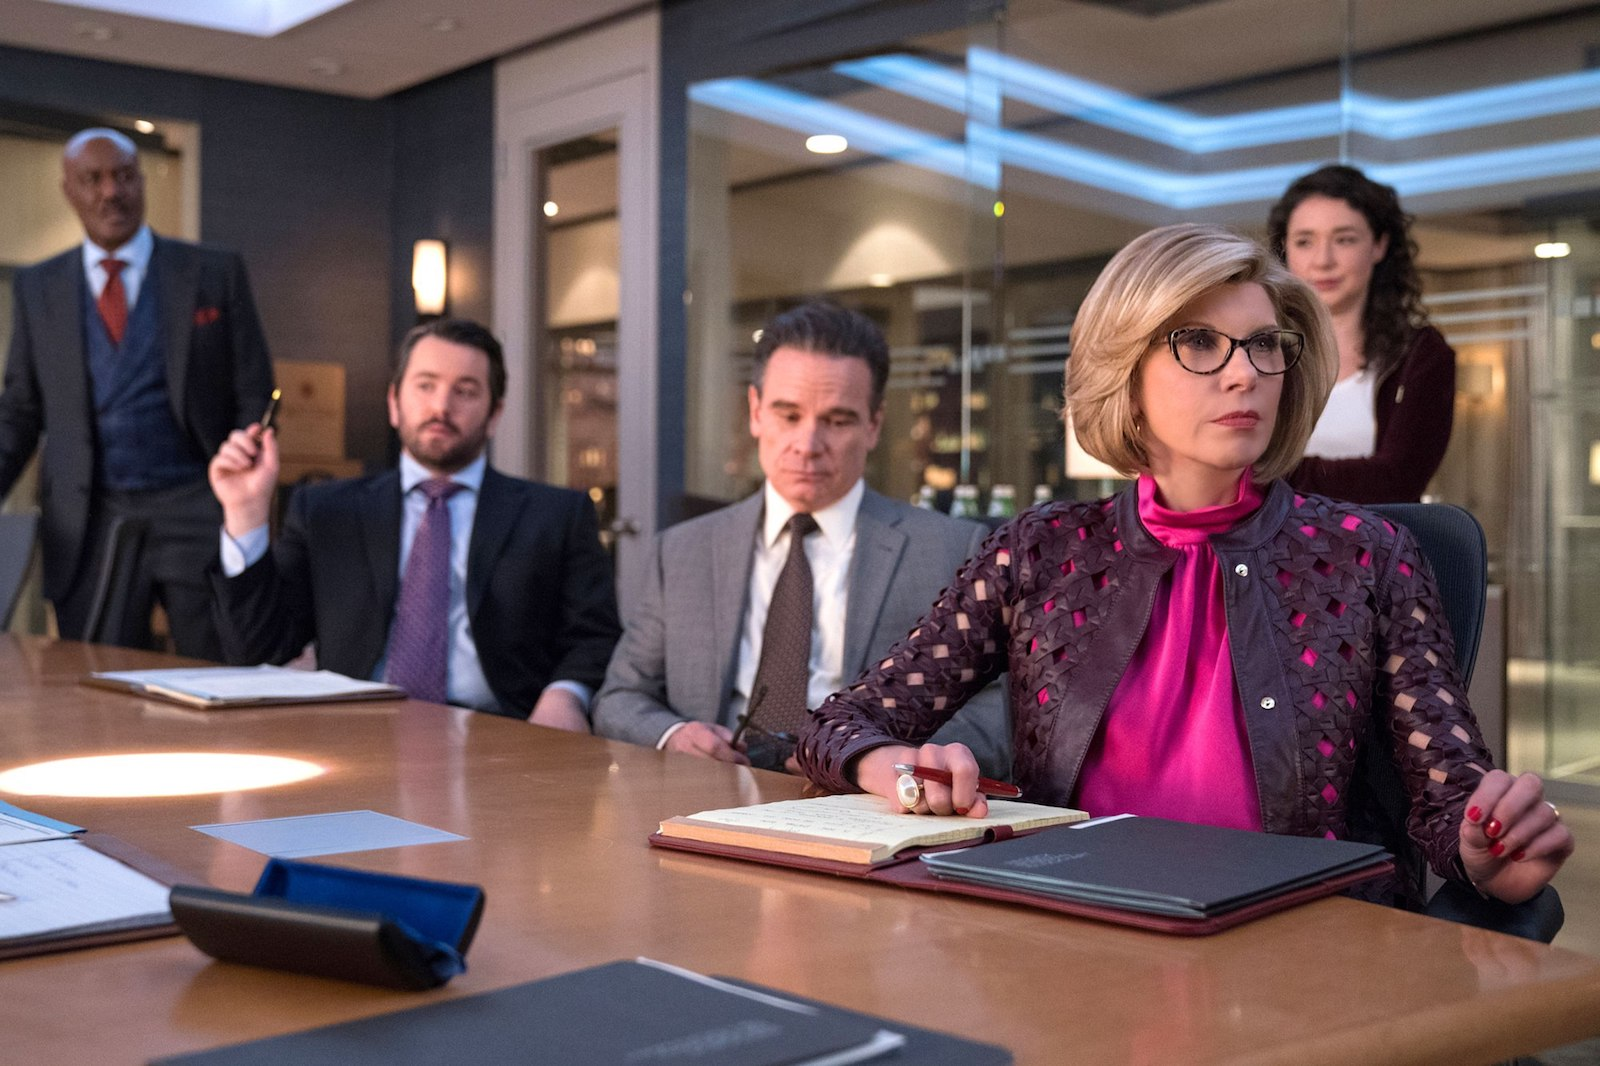 CBS All Access and its exclusive shows are now available in Canada